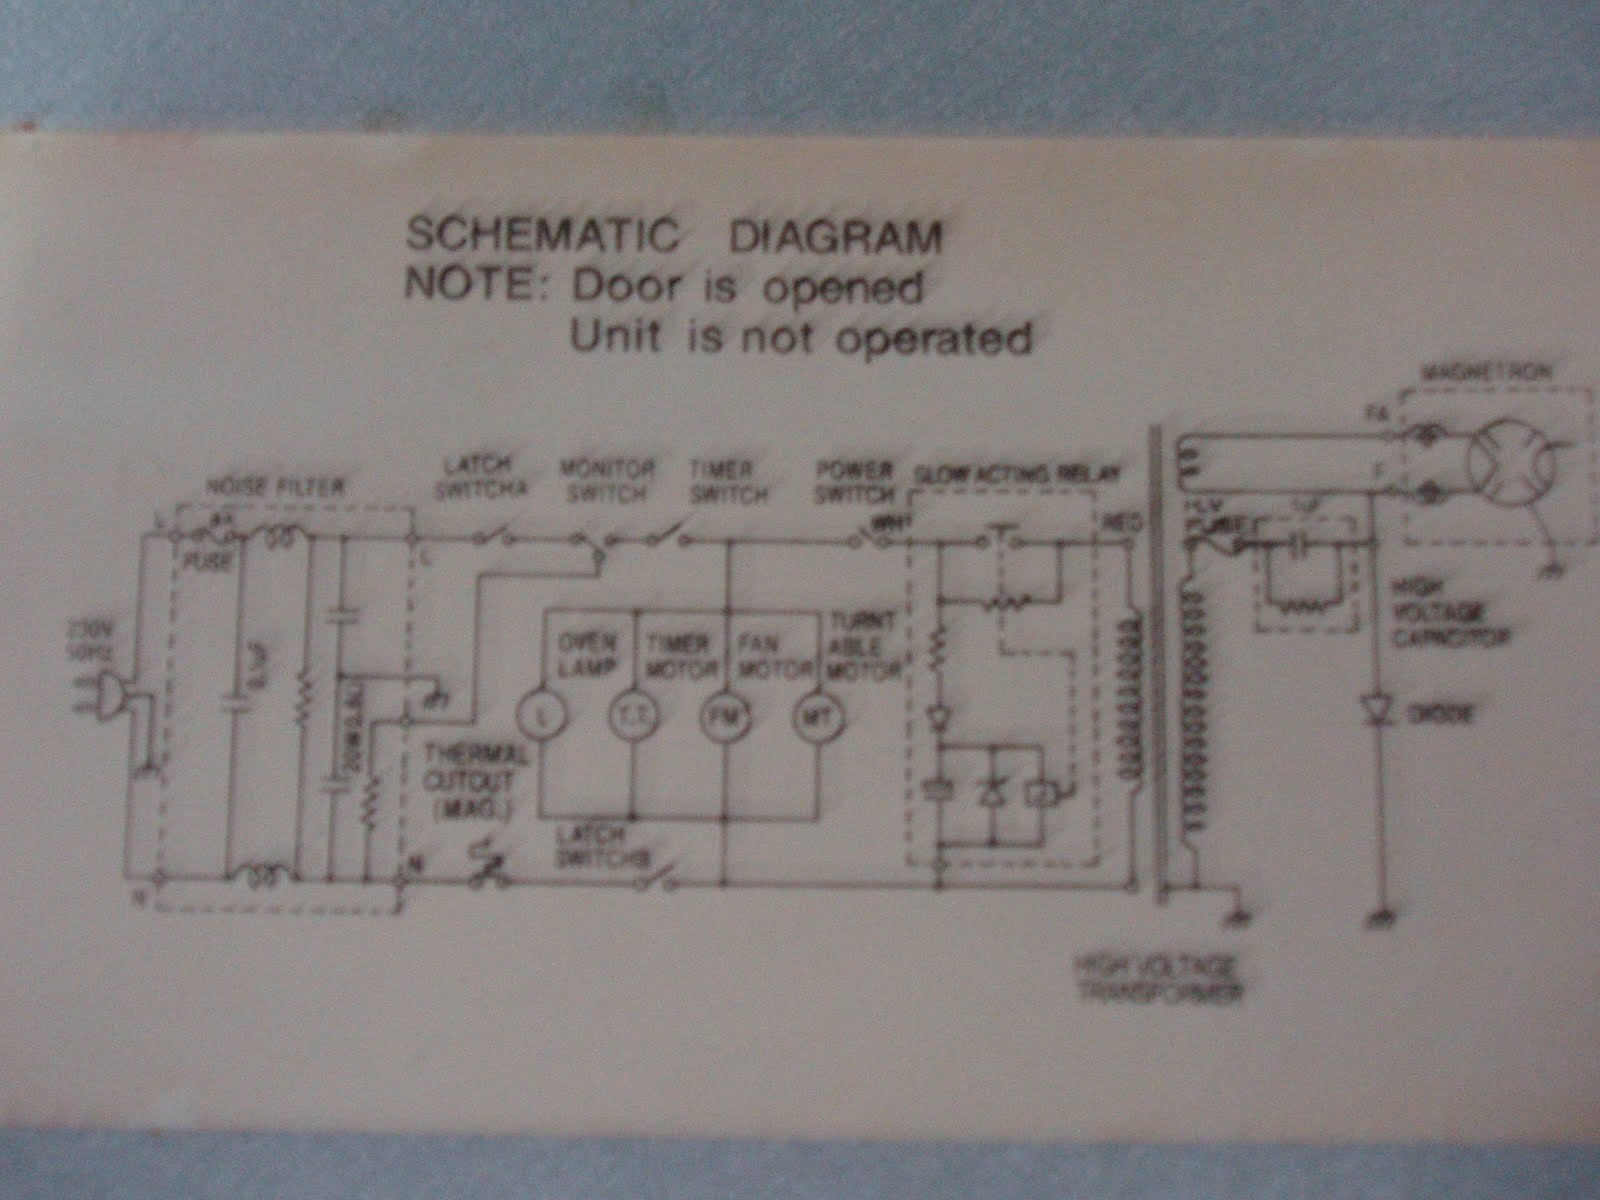 microwave oven circuit diagram microwave ovens panasonic microwave oven service manuals 51 75 of 250